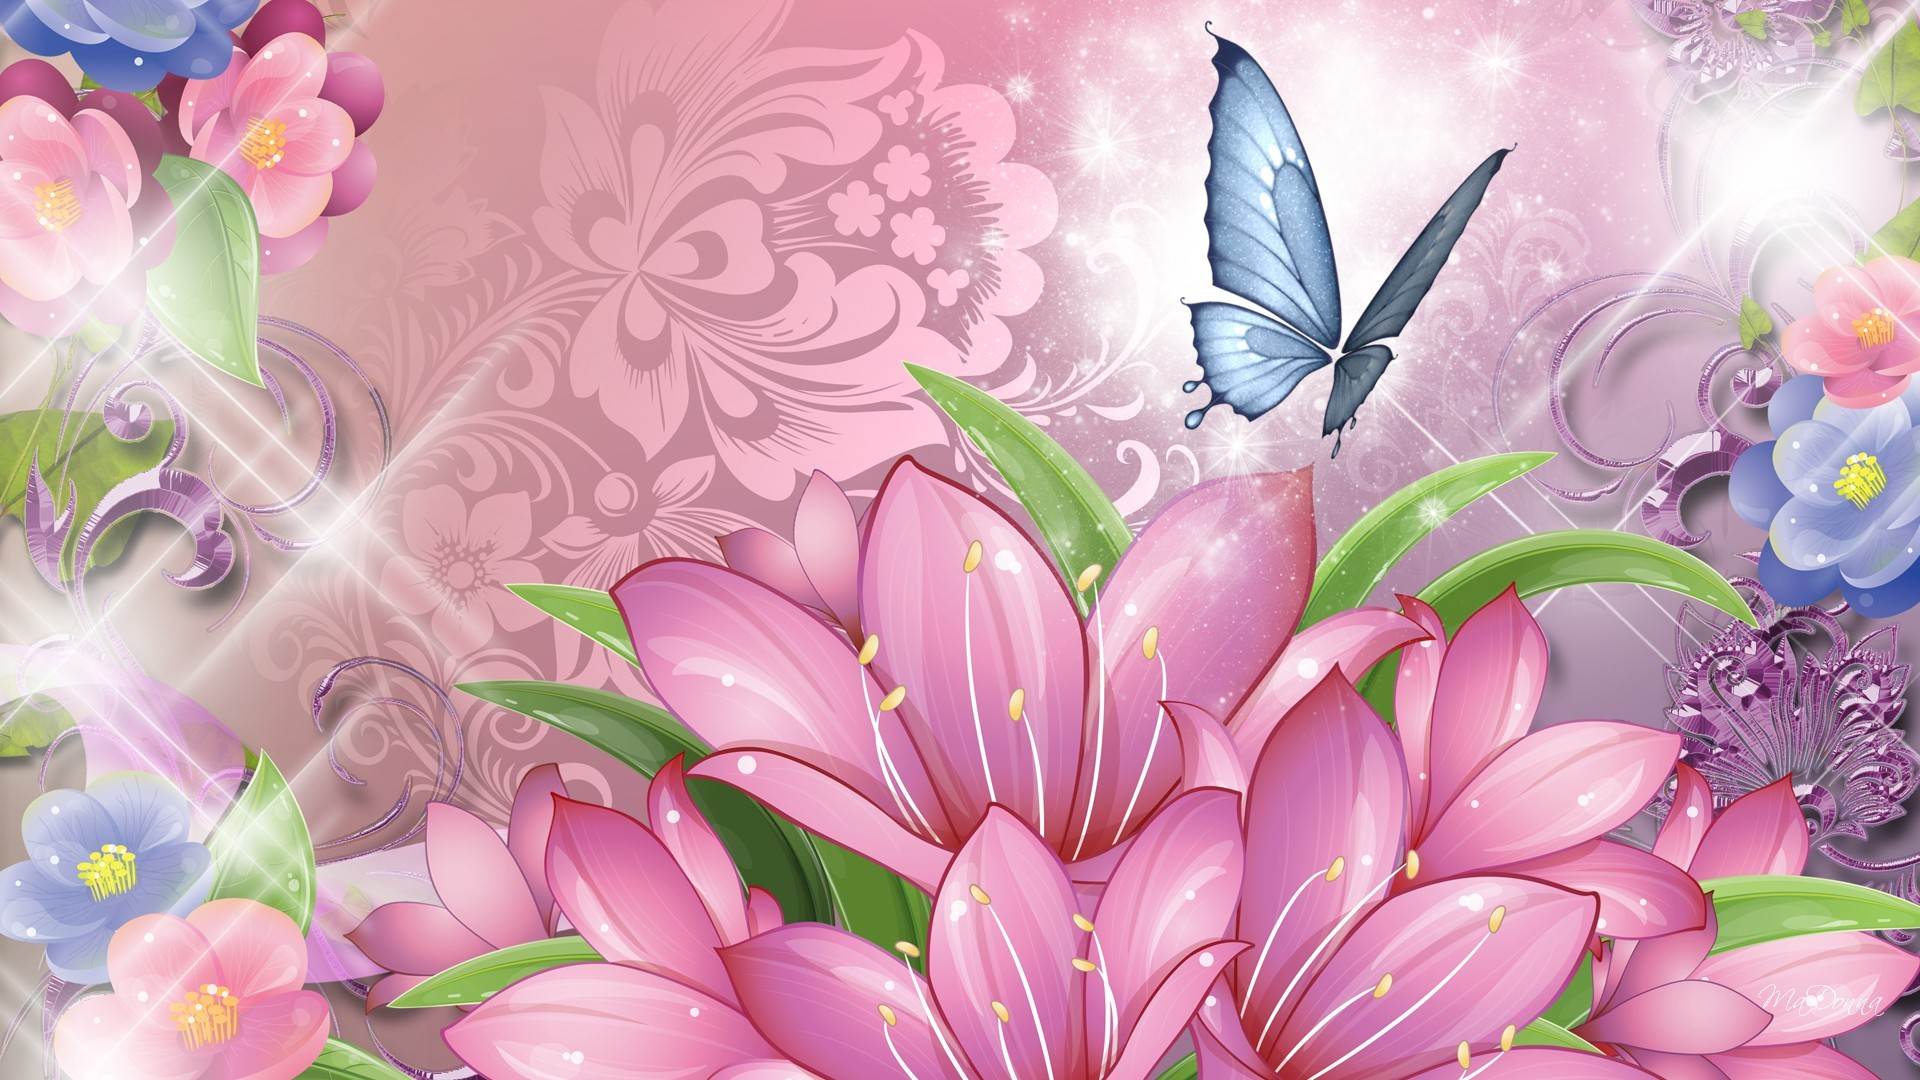 Blue Butterfly and Pink Flowers Wallpaper HD